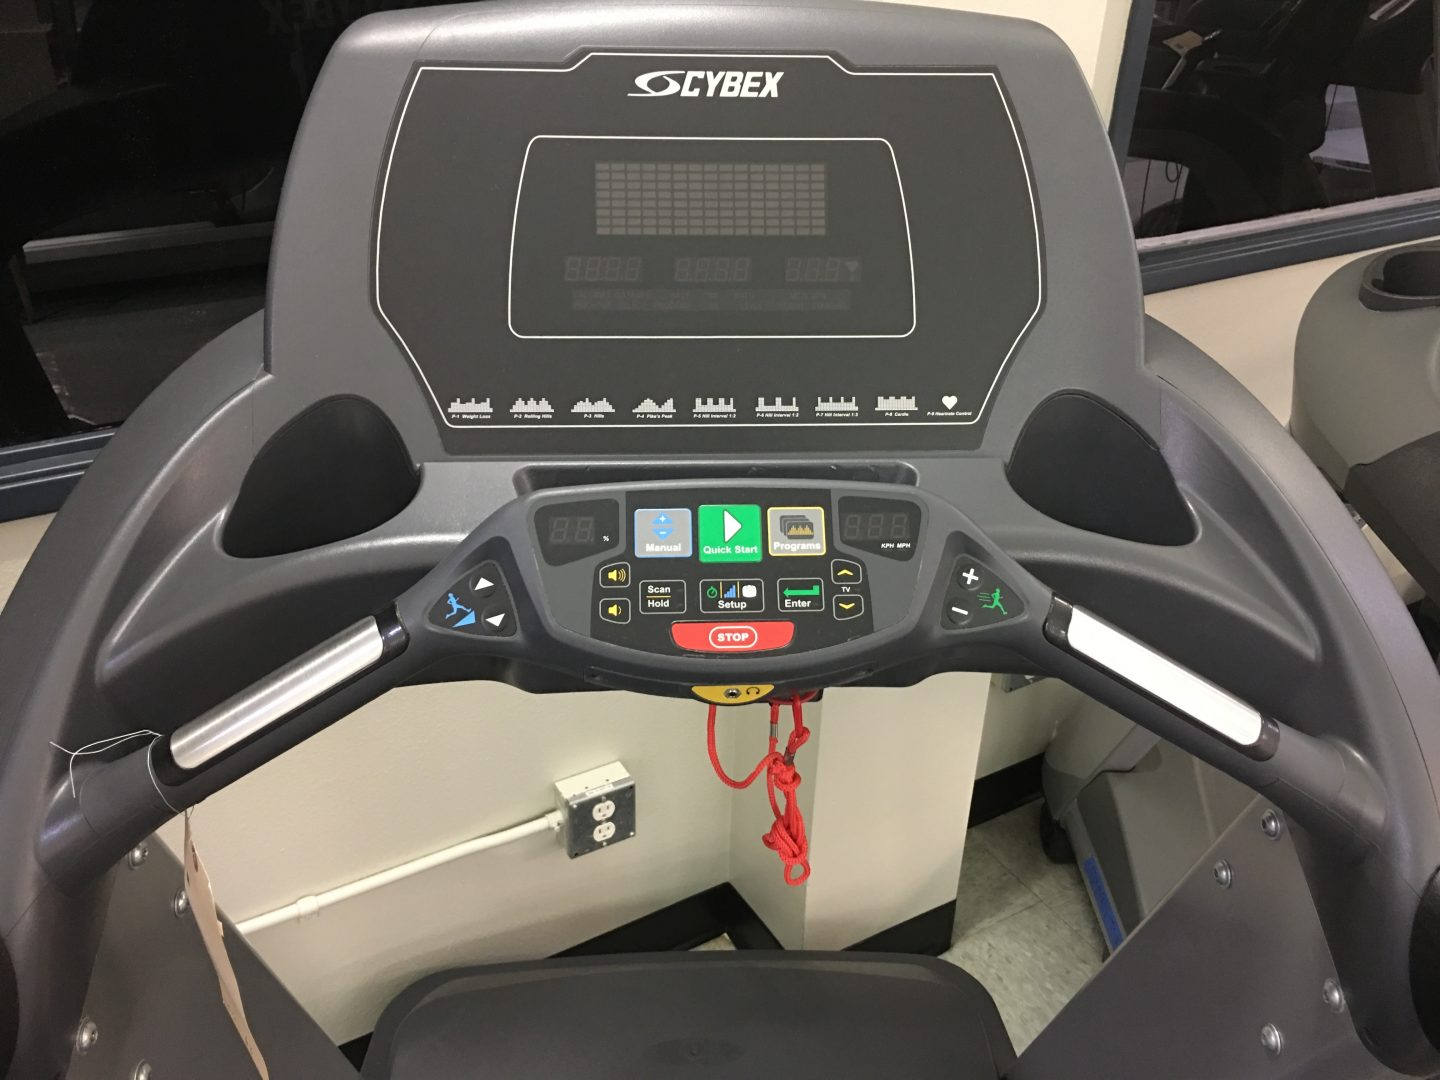 Cybex 625t Treadmill Wholesale Prices To The Public